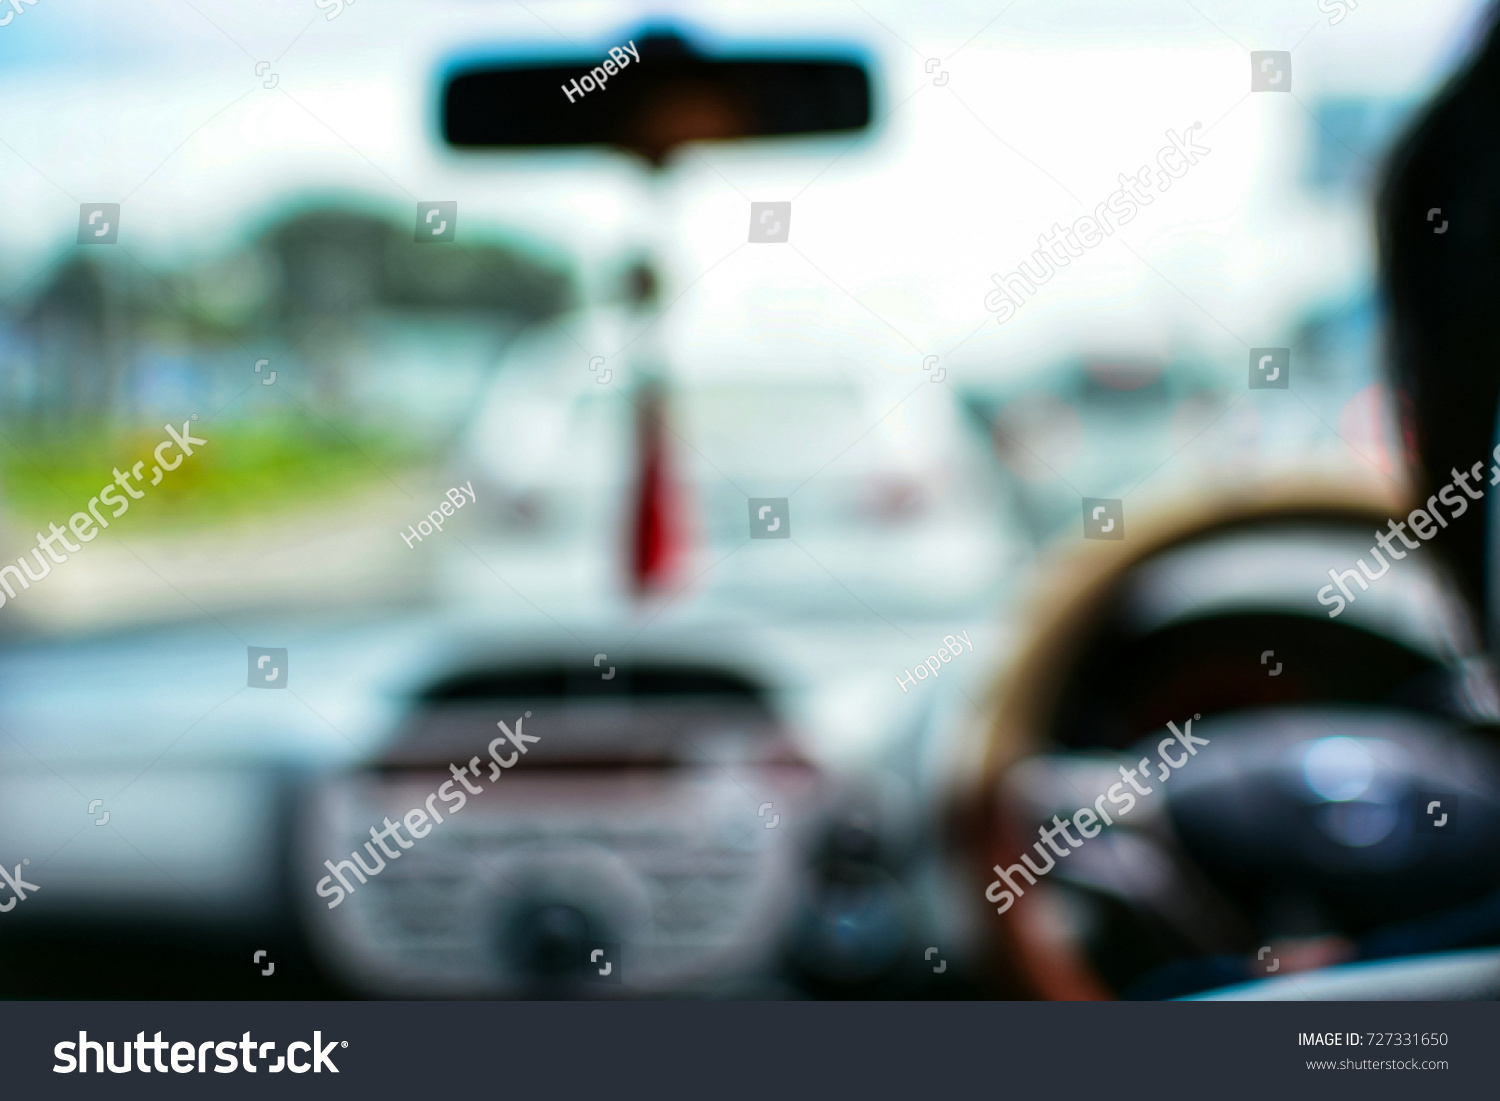 Blurred driving a car, traffic jam concept.